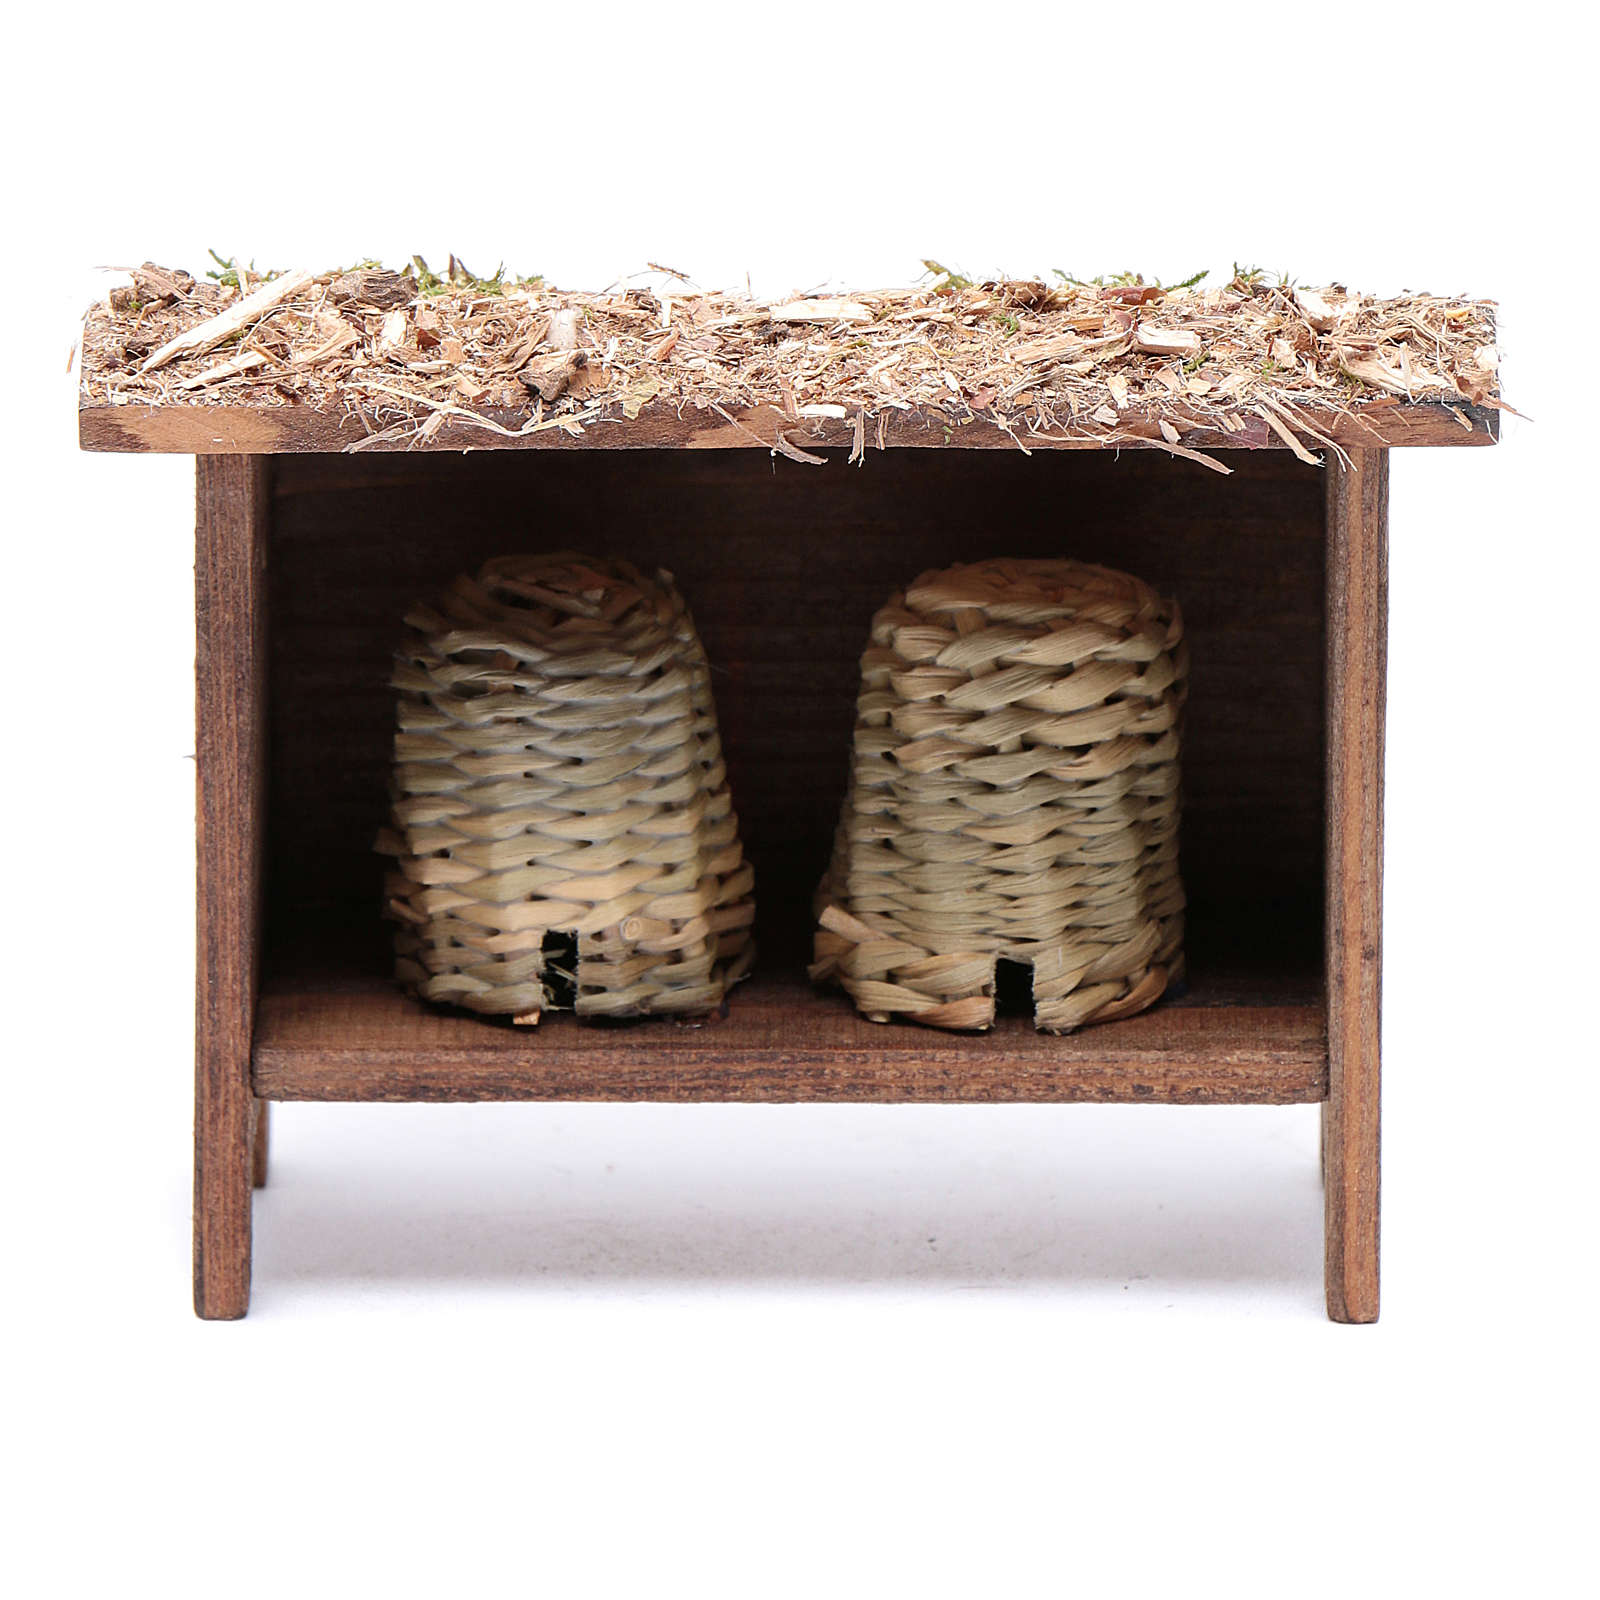 Wooden structure for beehive 3